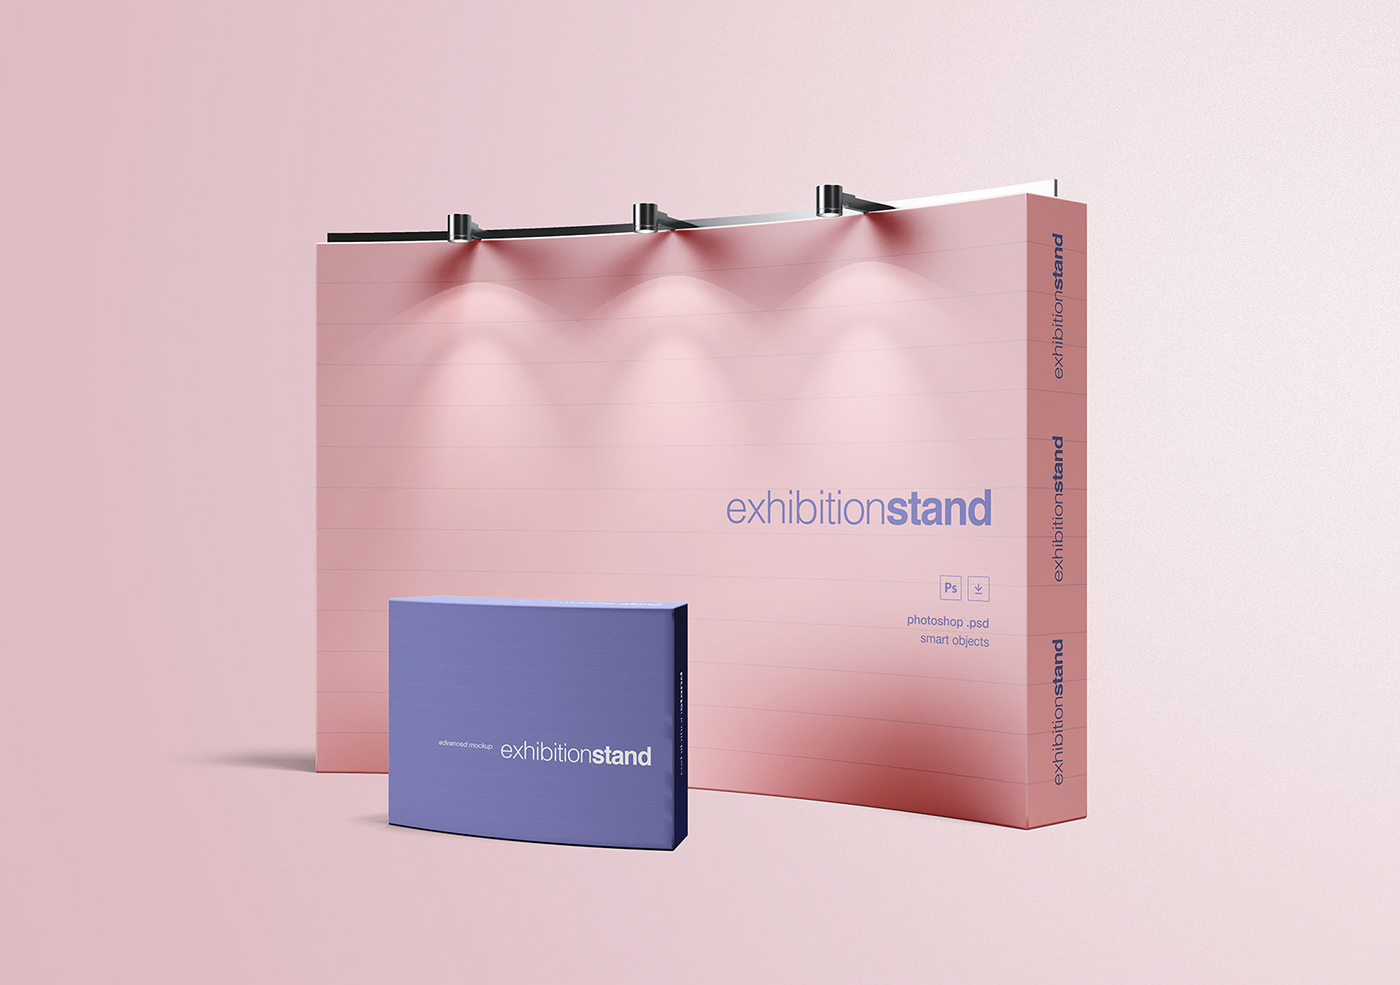 Exhibition Stand Behance : Exhibition stand mockup on behance